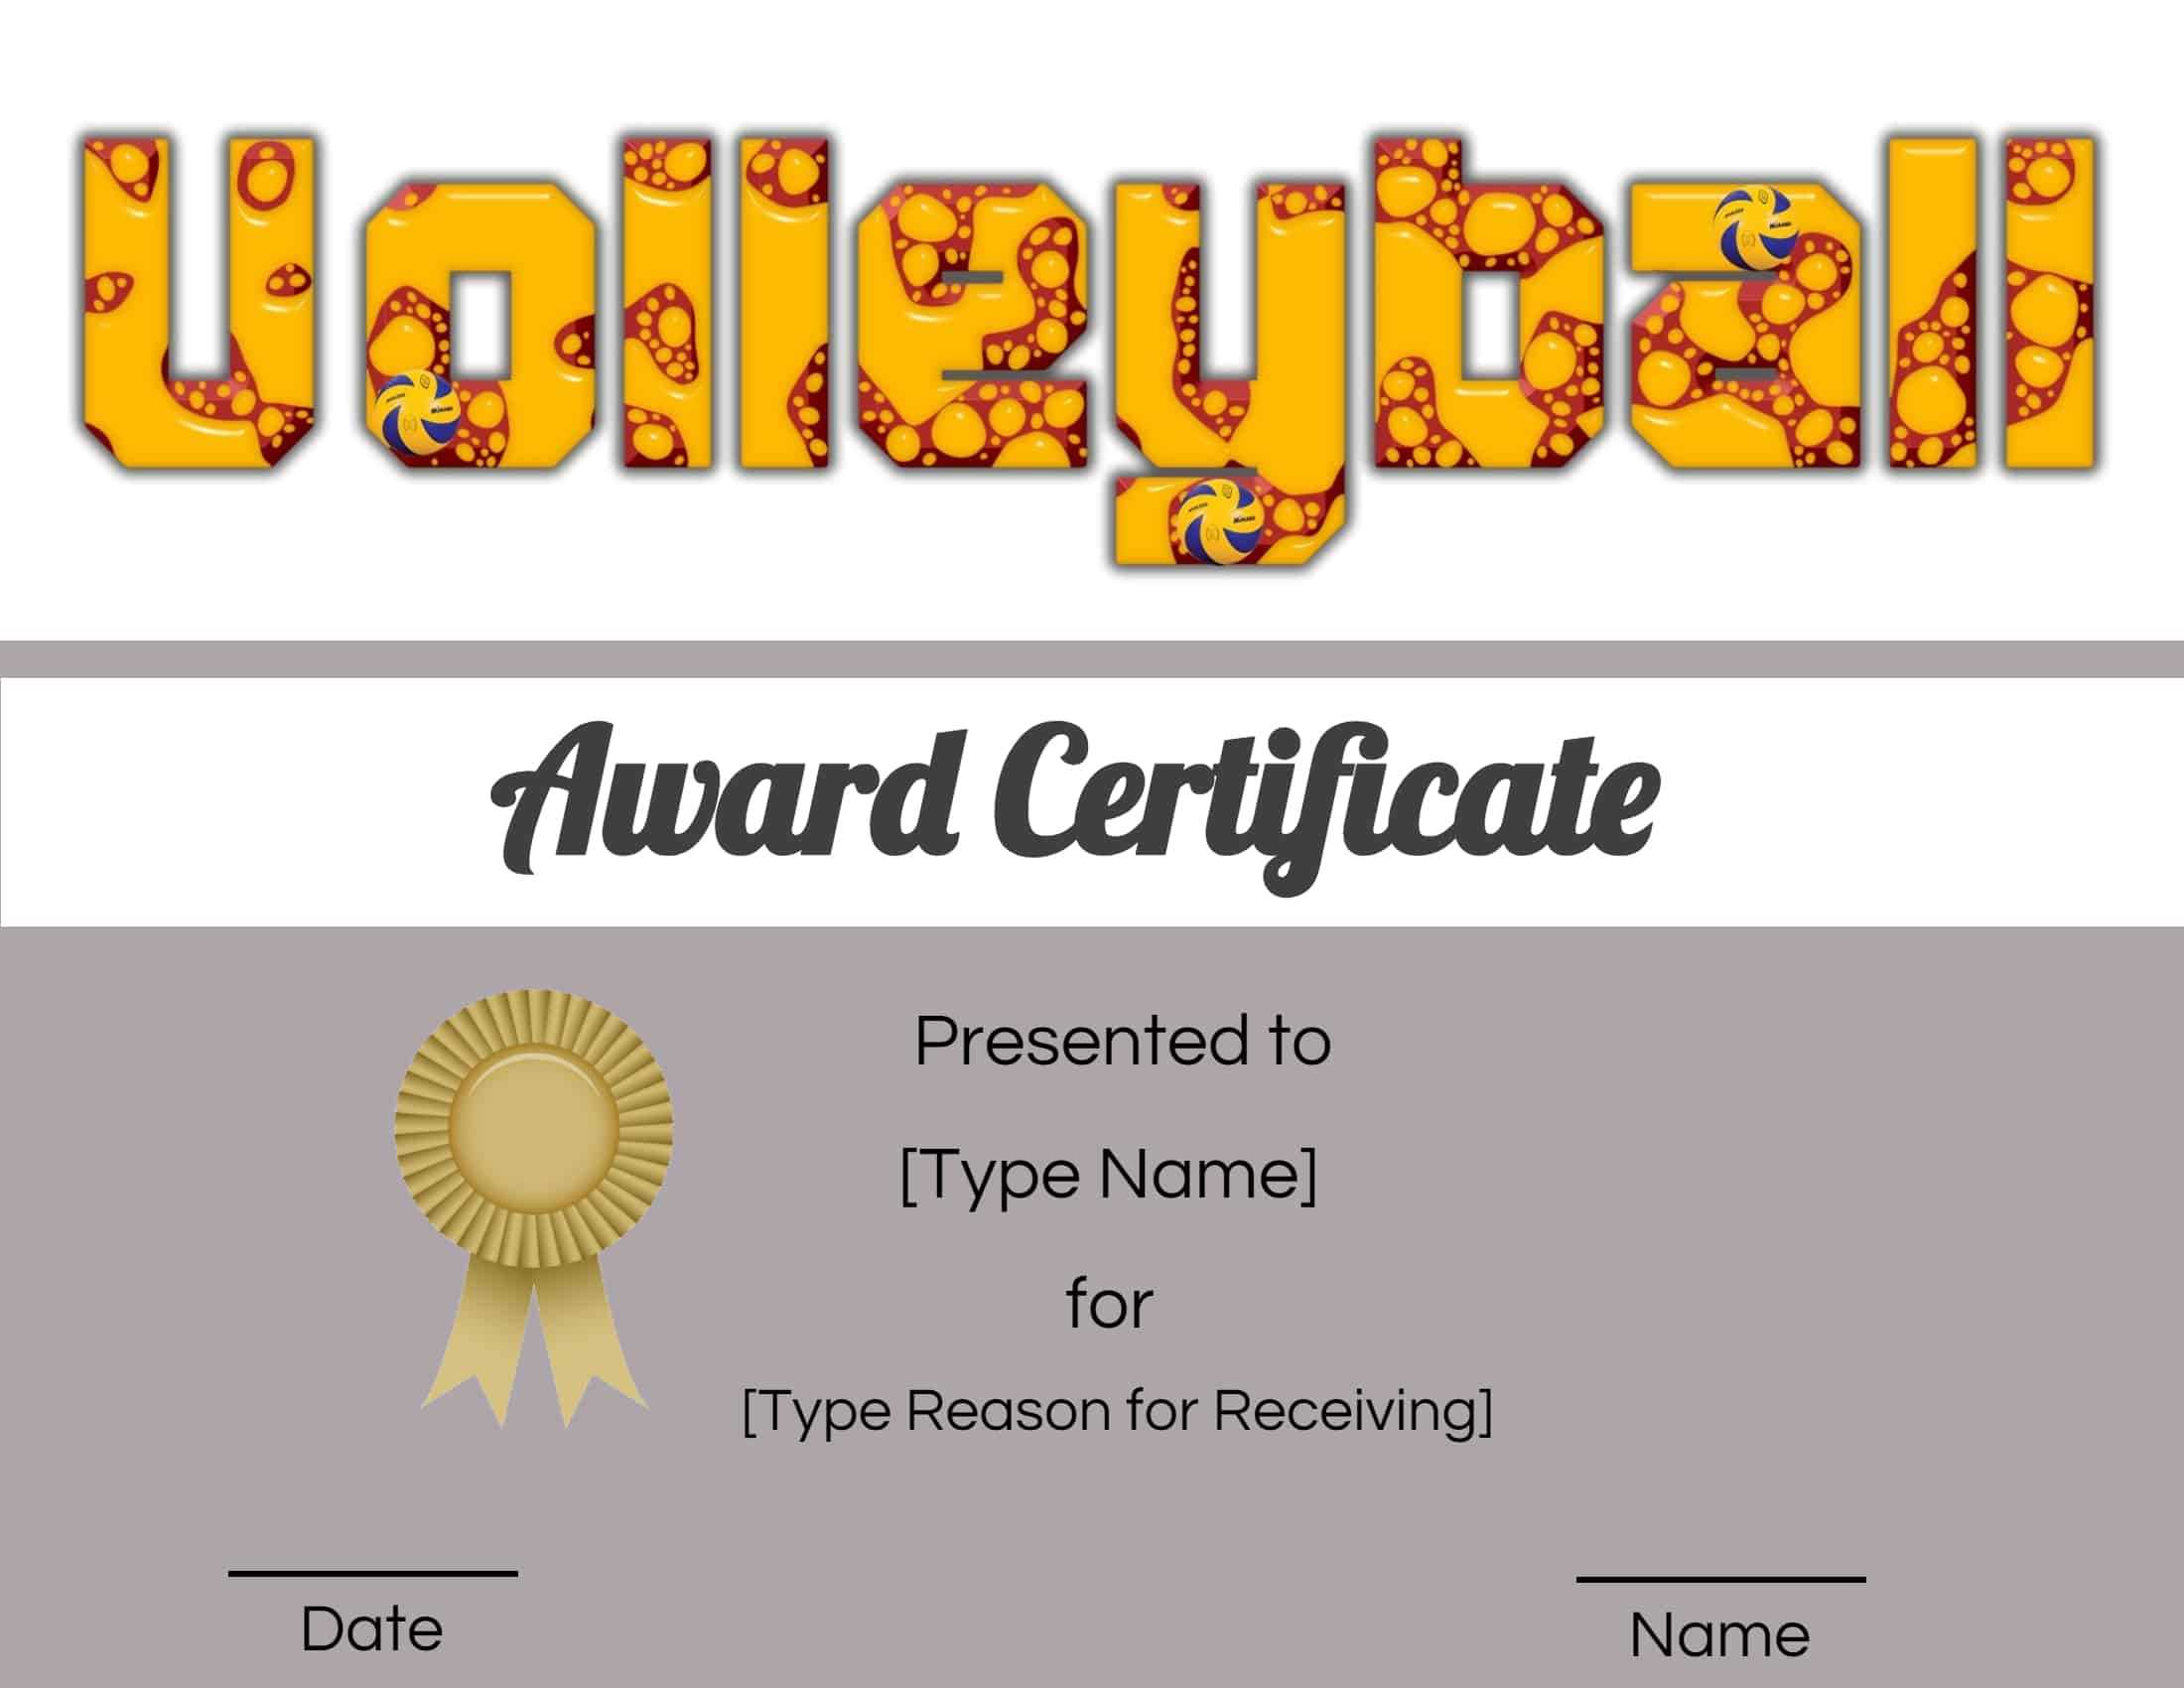 Rugby League Certificate Templates - Atlantaauctionco For Rugby League Certificate Templates